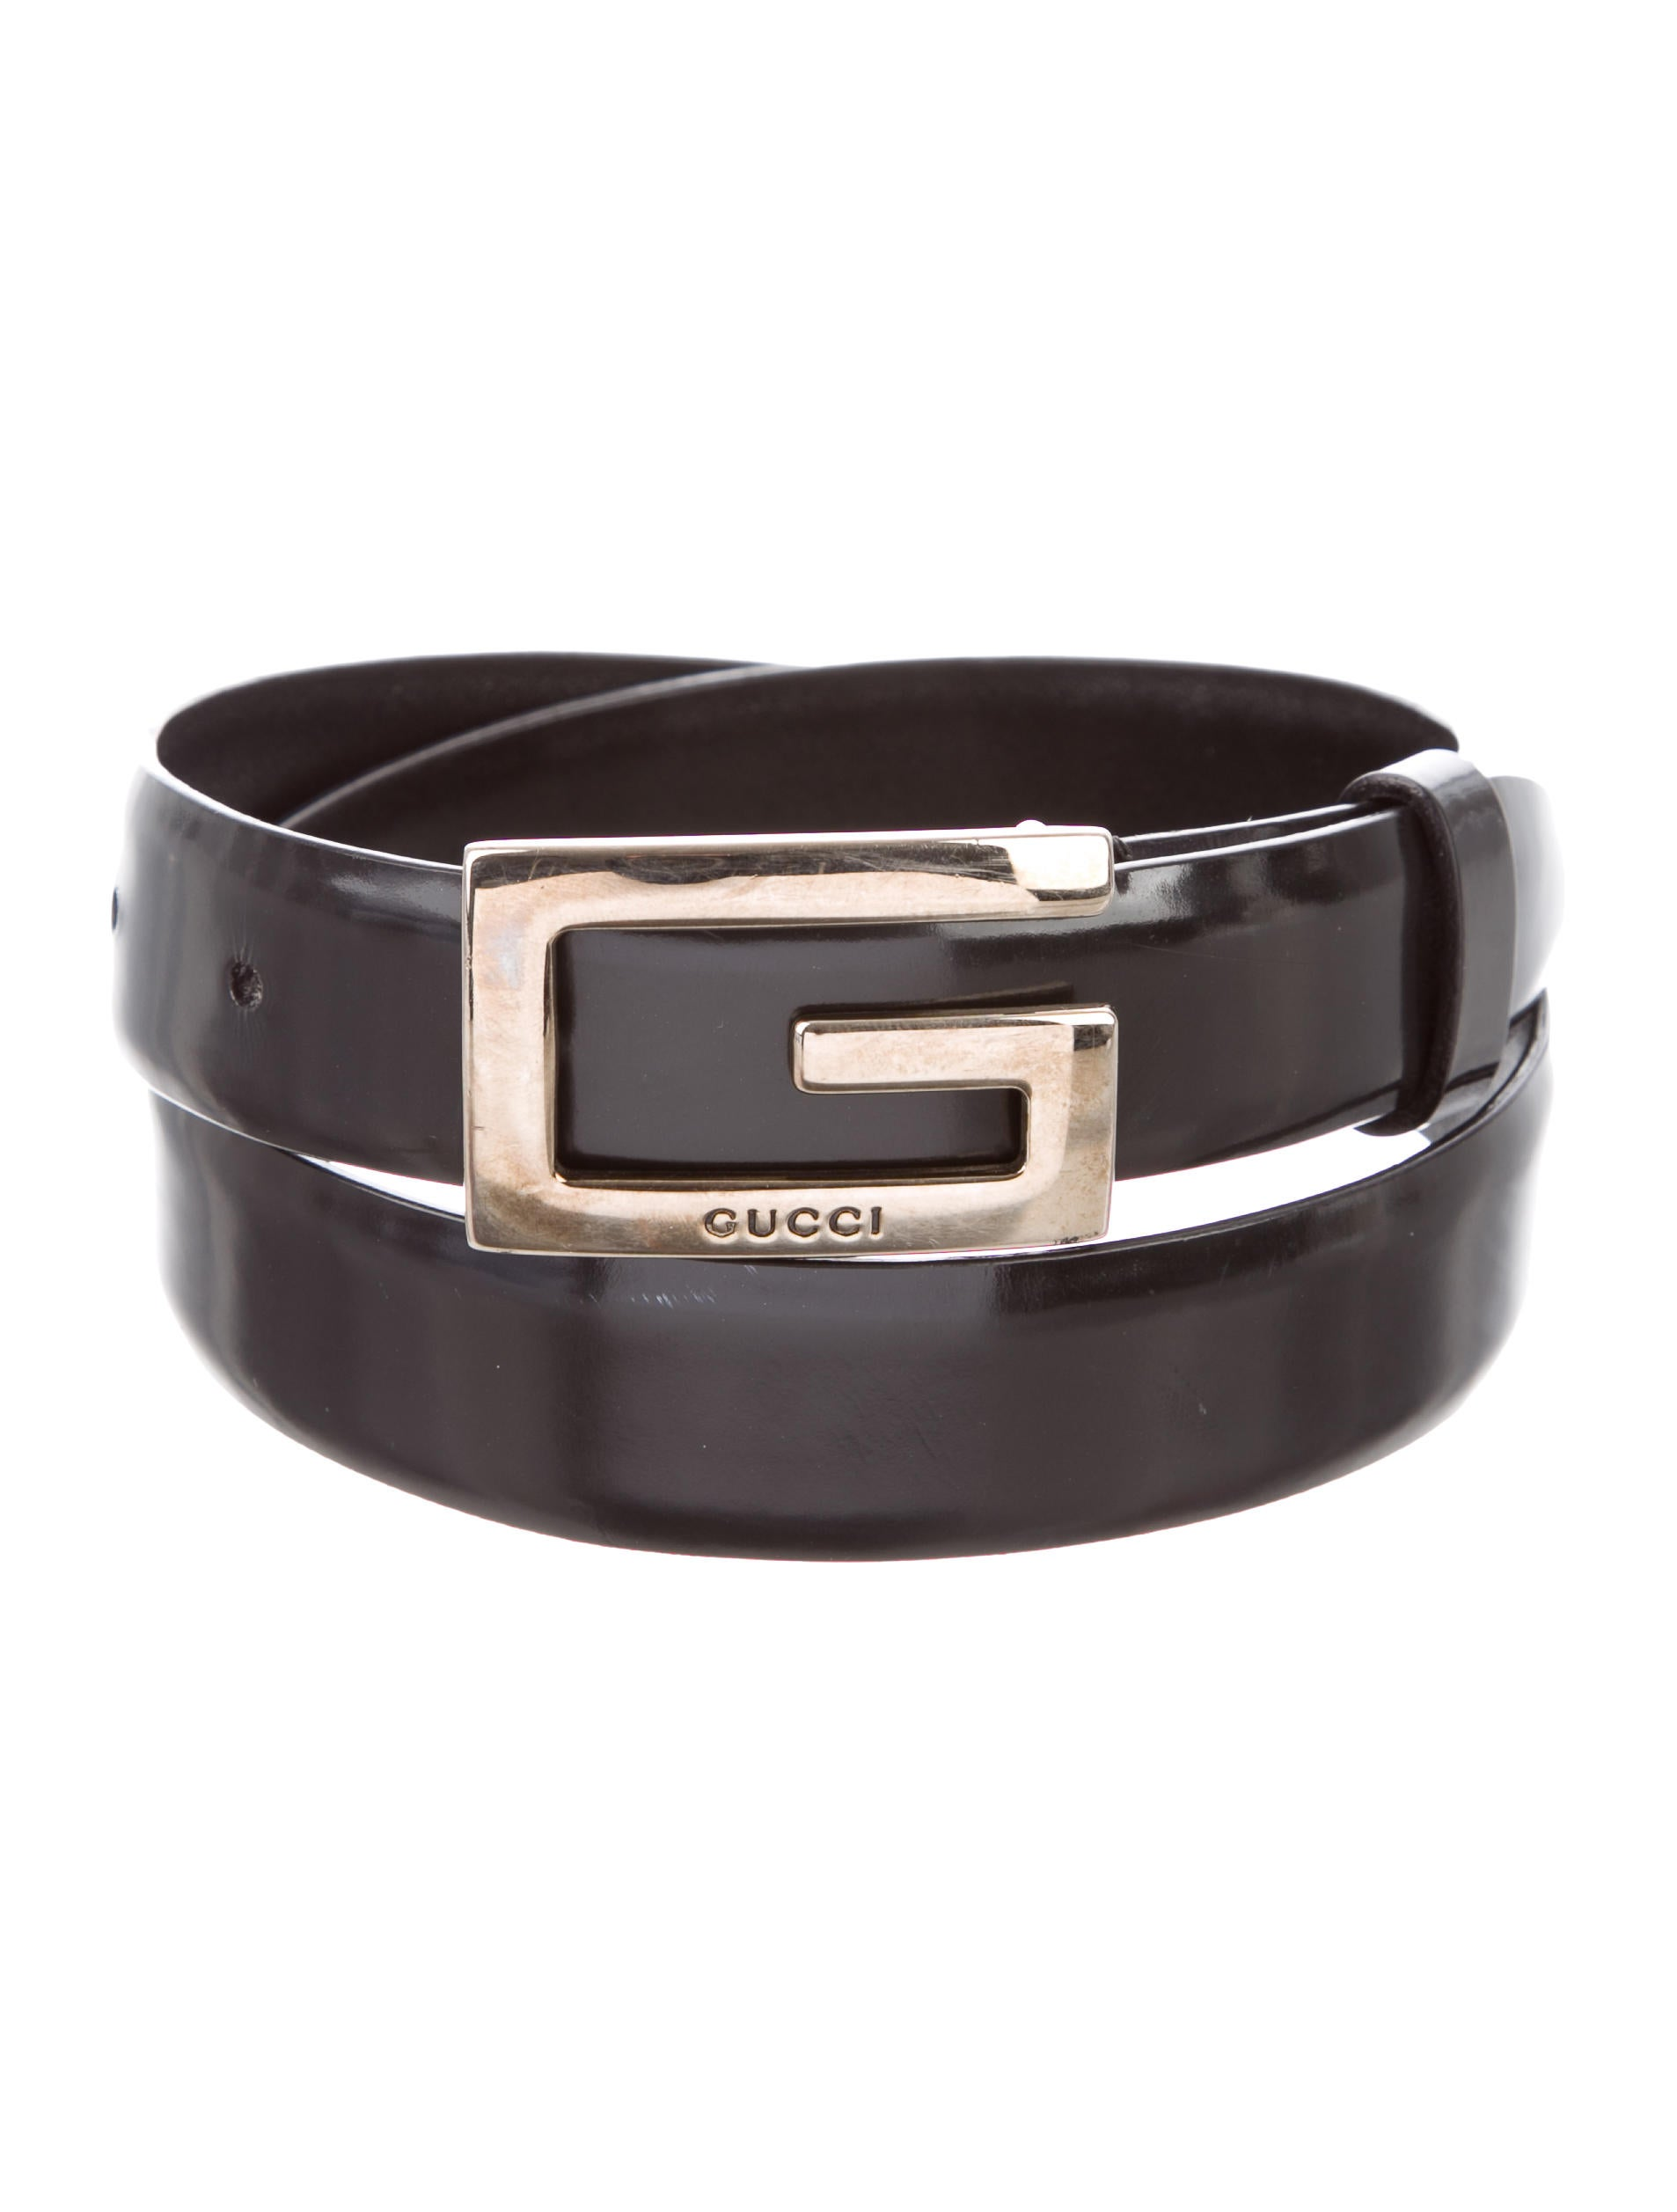 ee47dc4c8a8 Gucci Leather Buckle Belt - Accessories - GUC197572